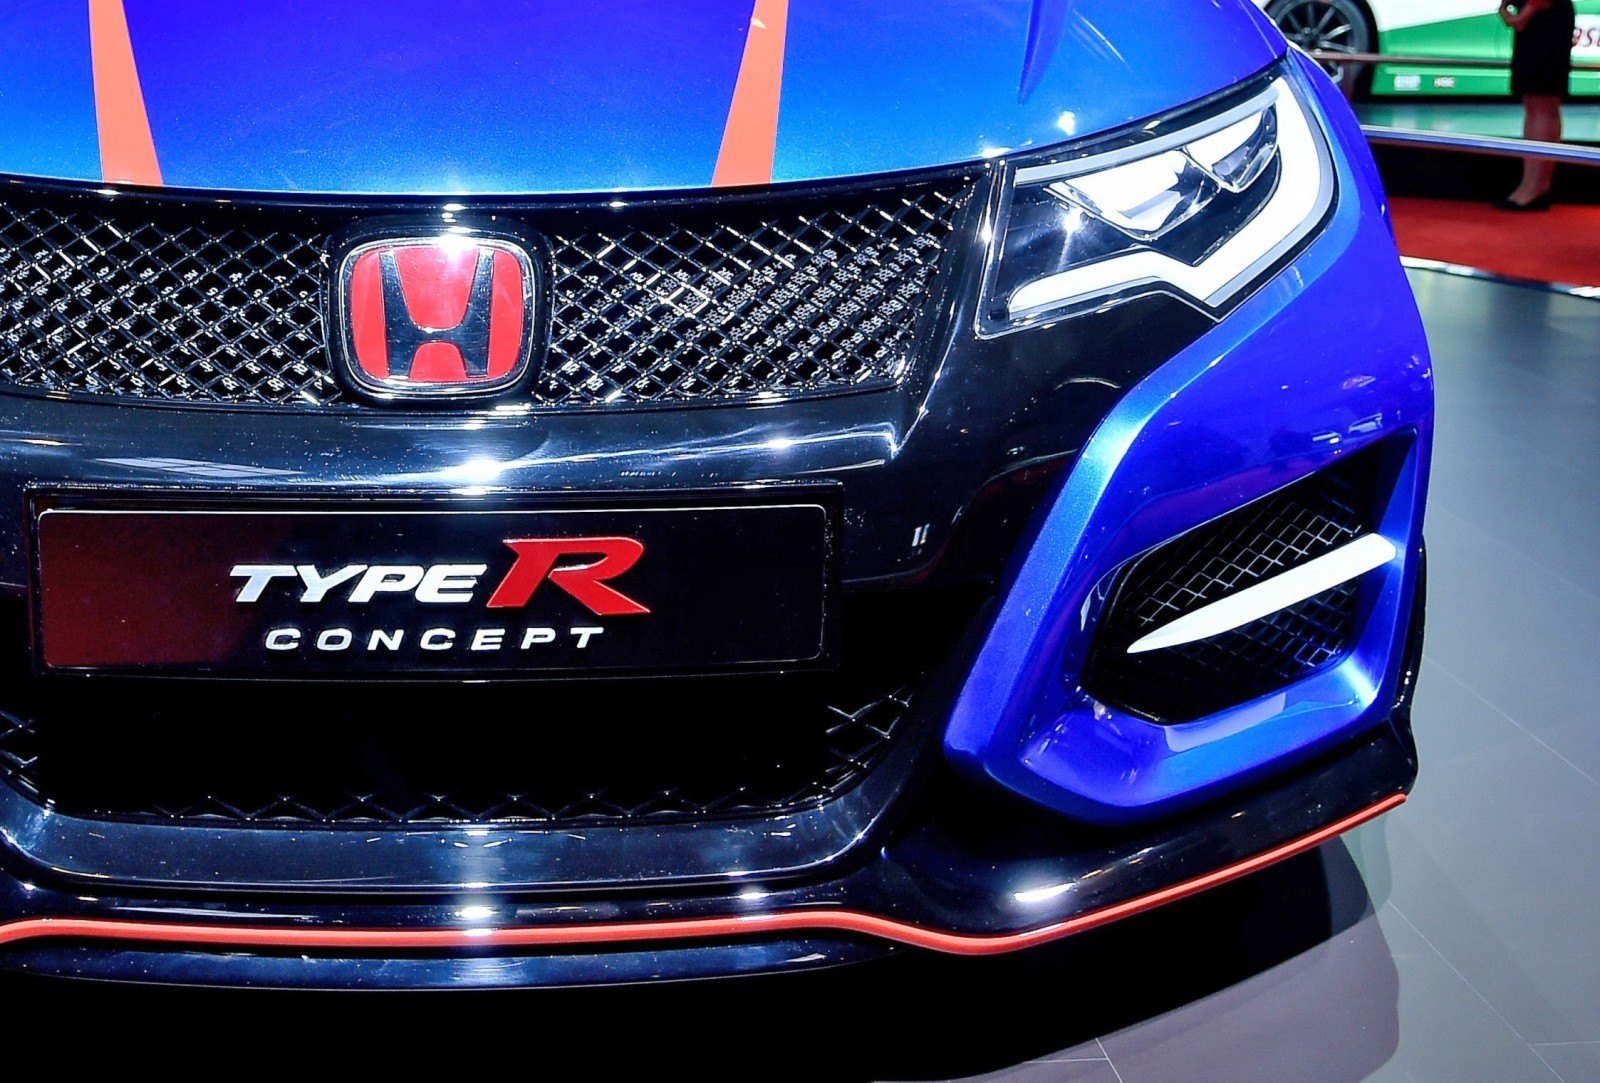 2015 Honda Civic Type R Concept Two Makes Paris Debut 4